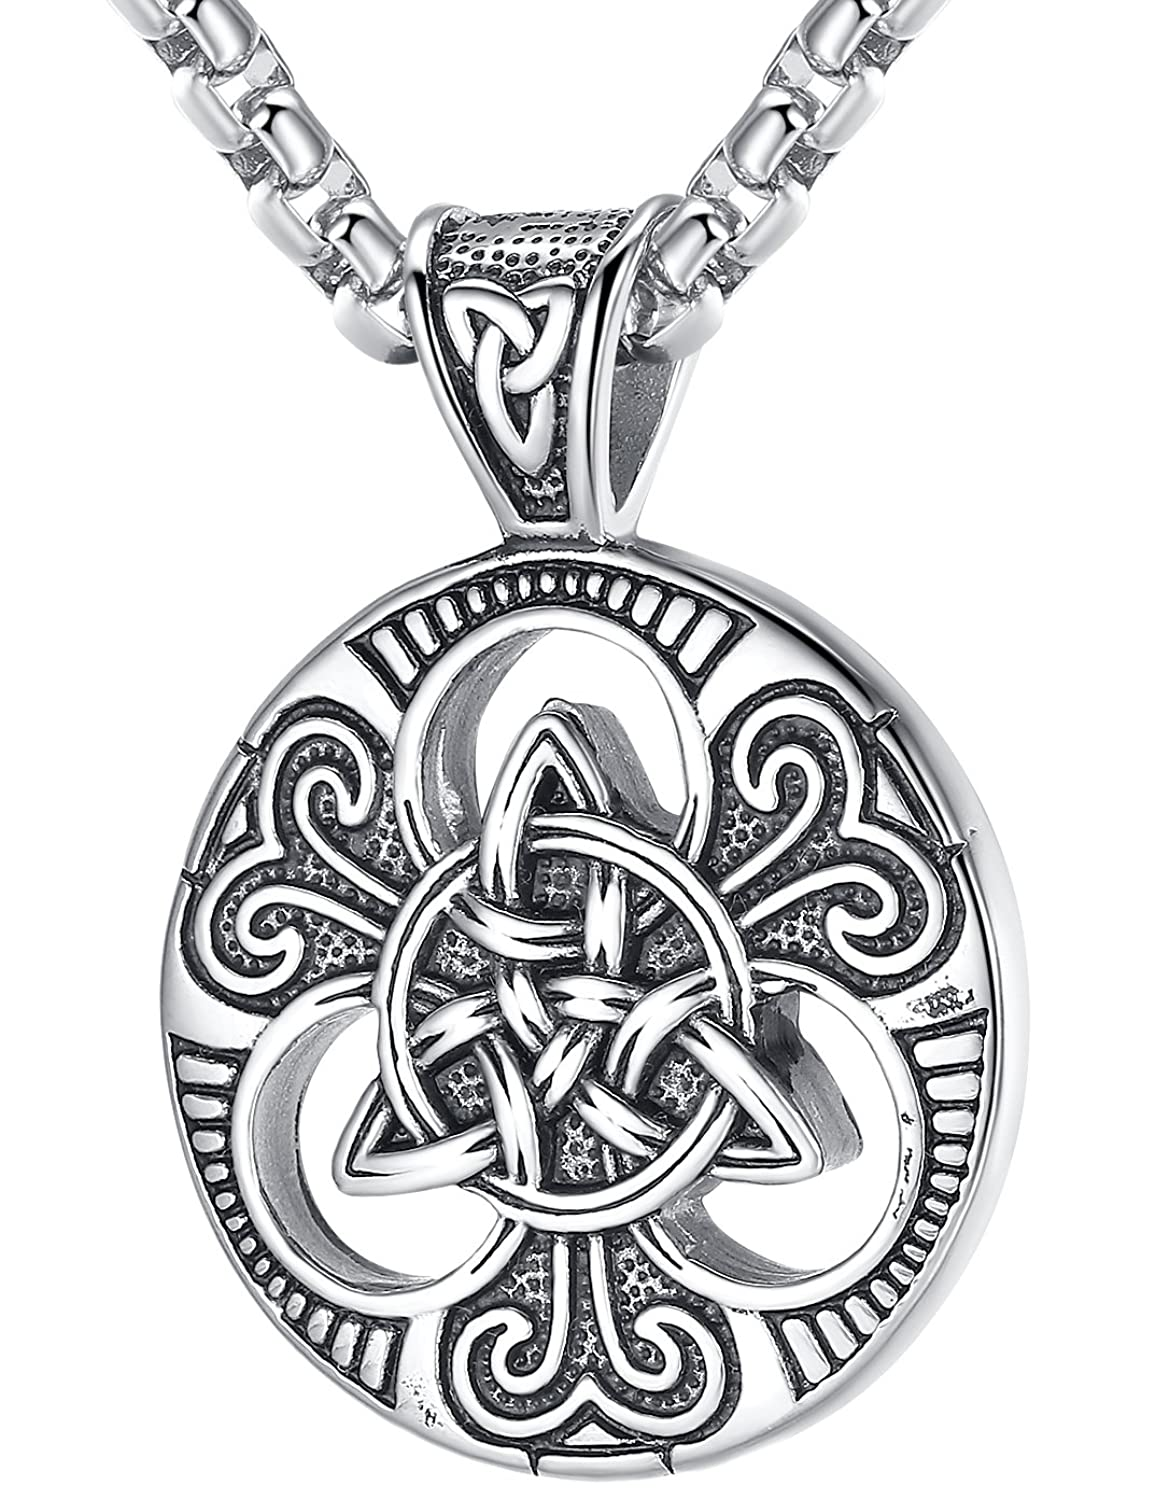 "LineAve Men's Stainless Steel Celtic Trinity Knot Triquetra Pendant Necklace, 23"" + 2"" Ext Chain"